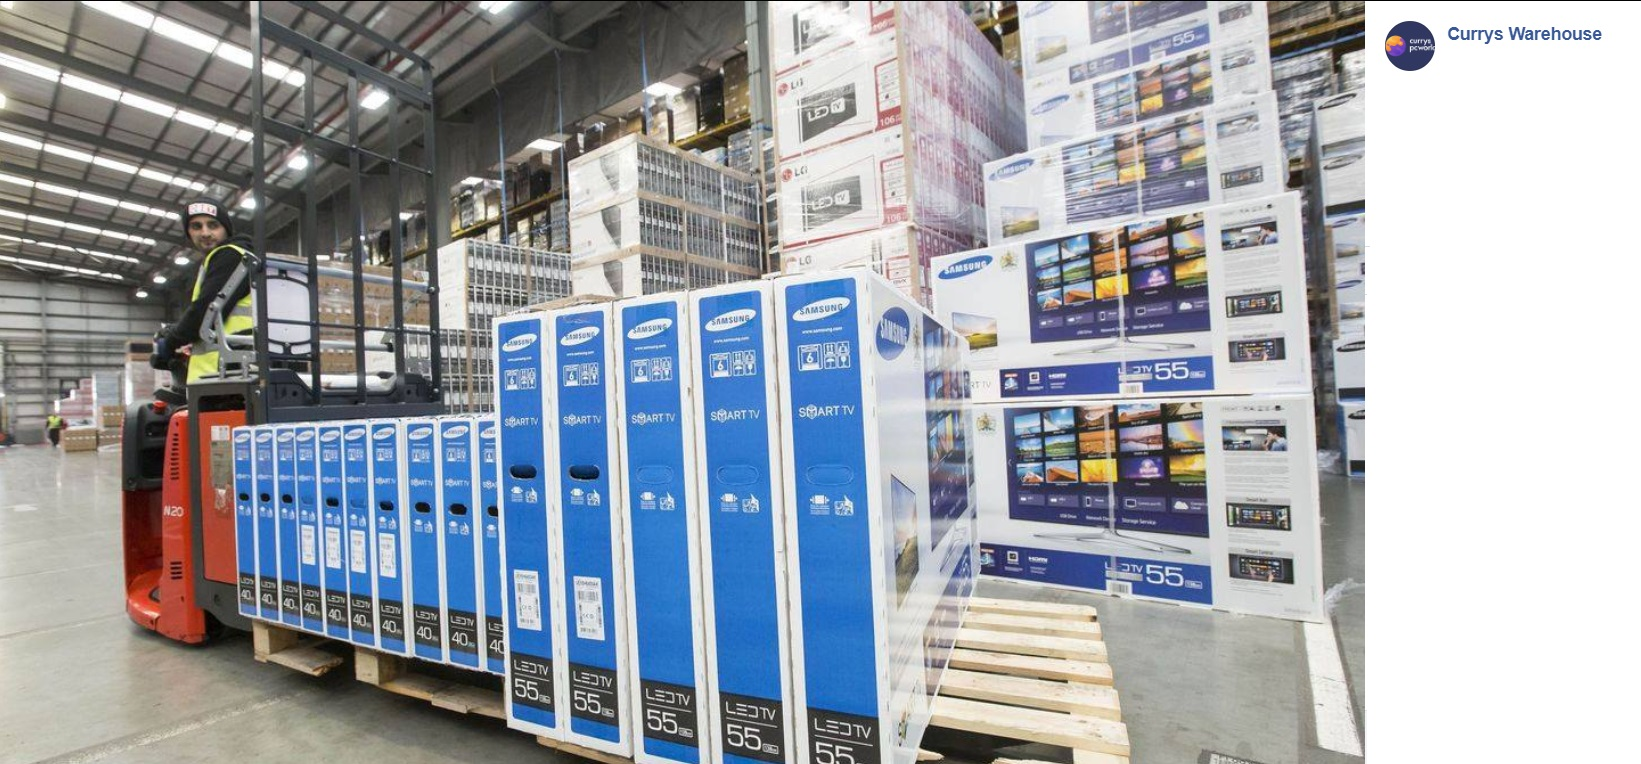 Currys Warehouse Facebook Scam  They are Not Giving Away 15 TVs